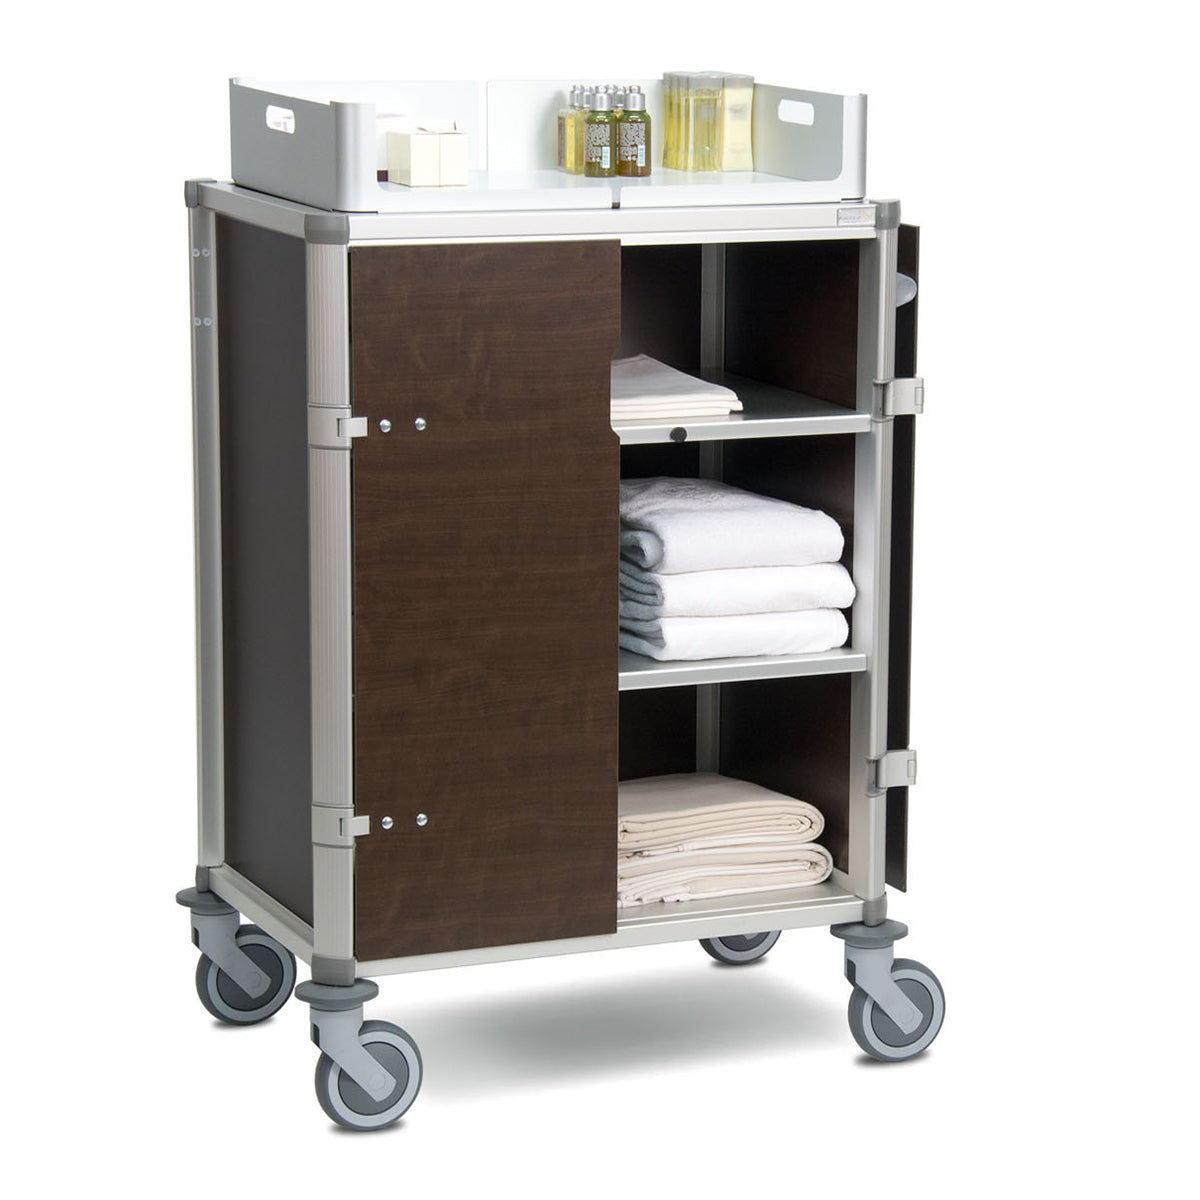 Vega 1020 Housekeeping Trolley